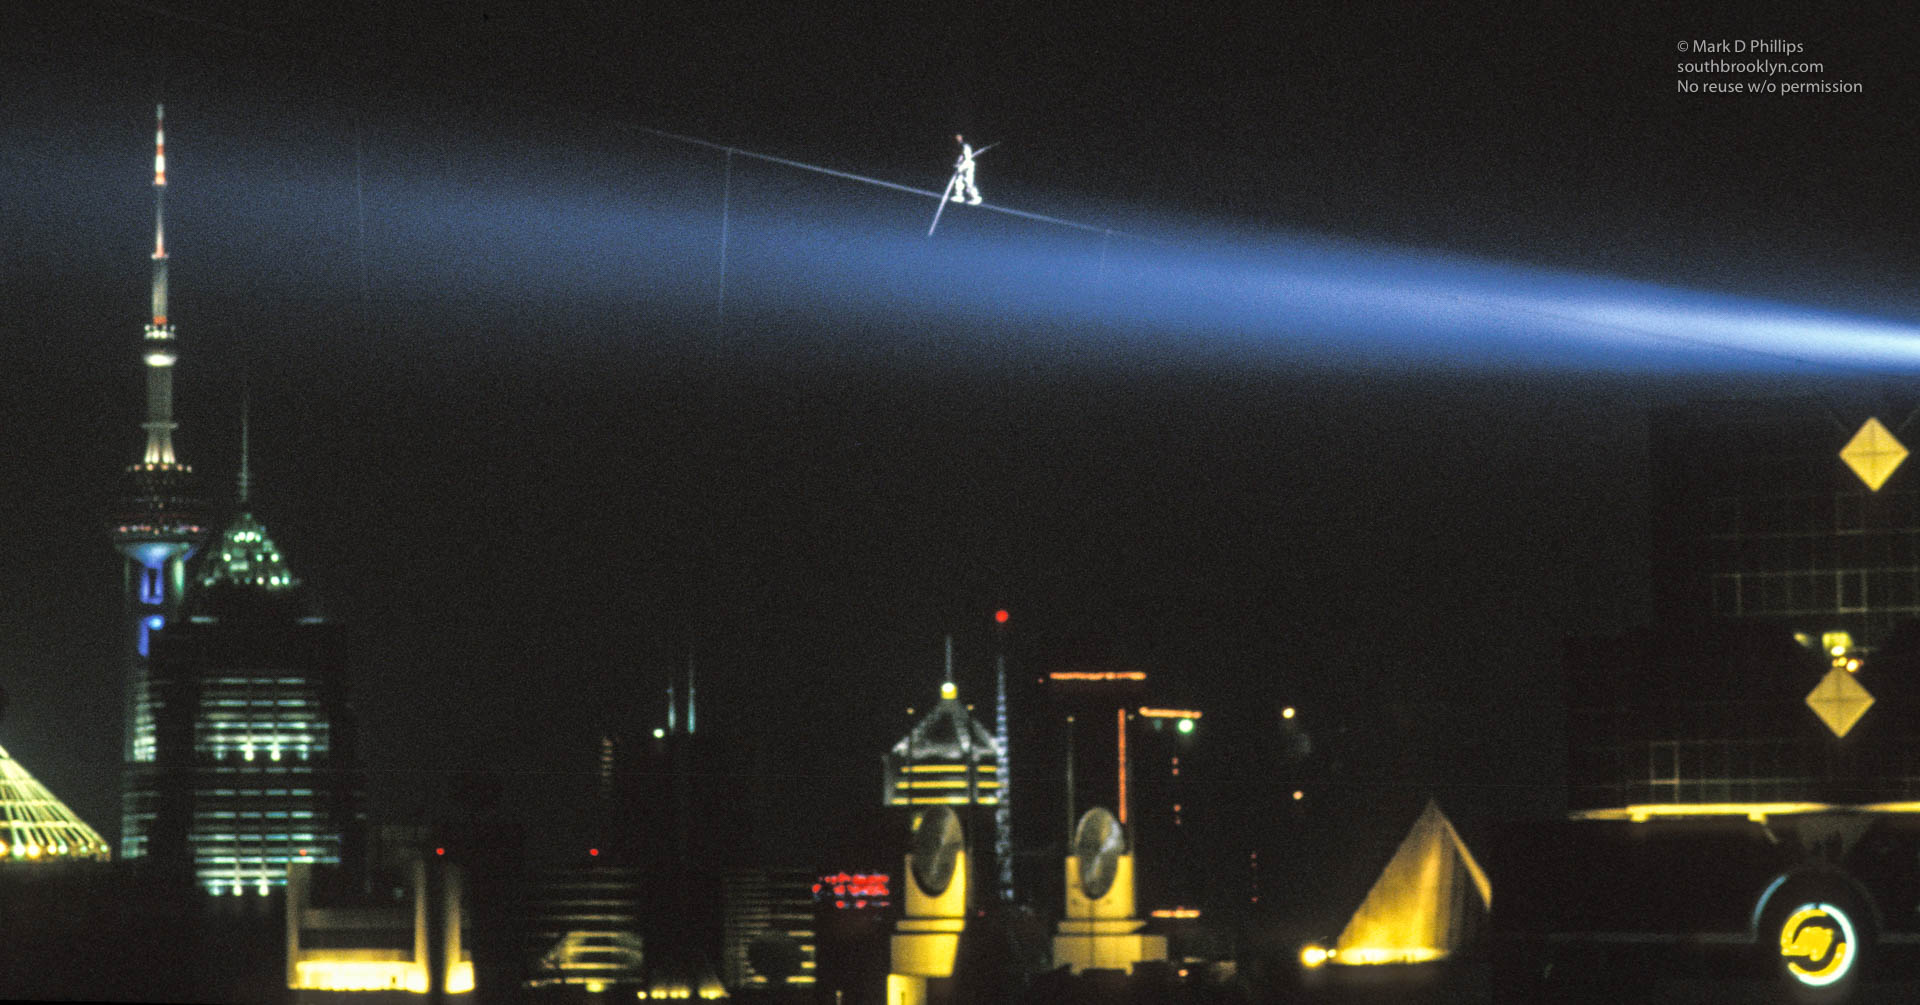 Canadian Jay Cochrane walks above the Pearl of the Orient Tower in Shanghai, China as he accomplished a world record for the highest and longest nighttime building-to-building wire walk on September 24, 1996 during the Shanghai Tourism Festival. ©Mark D Phillips